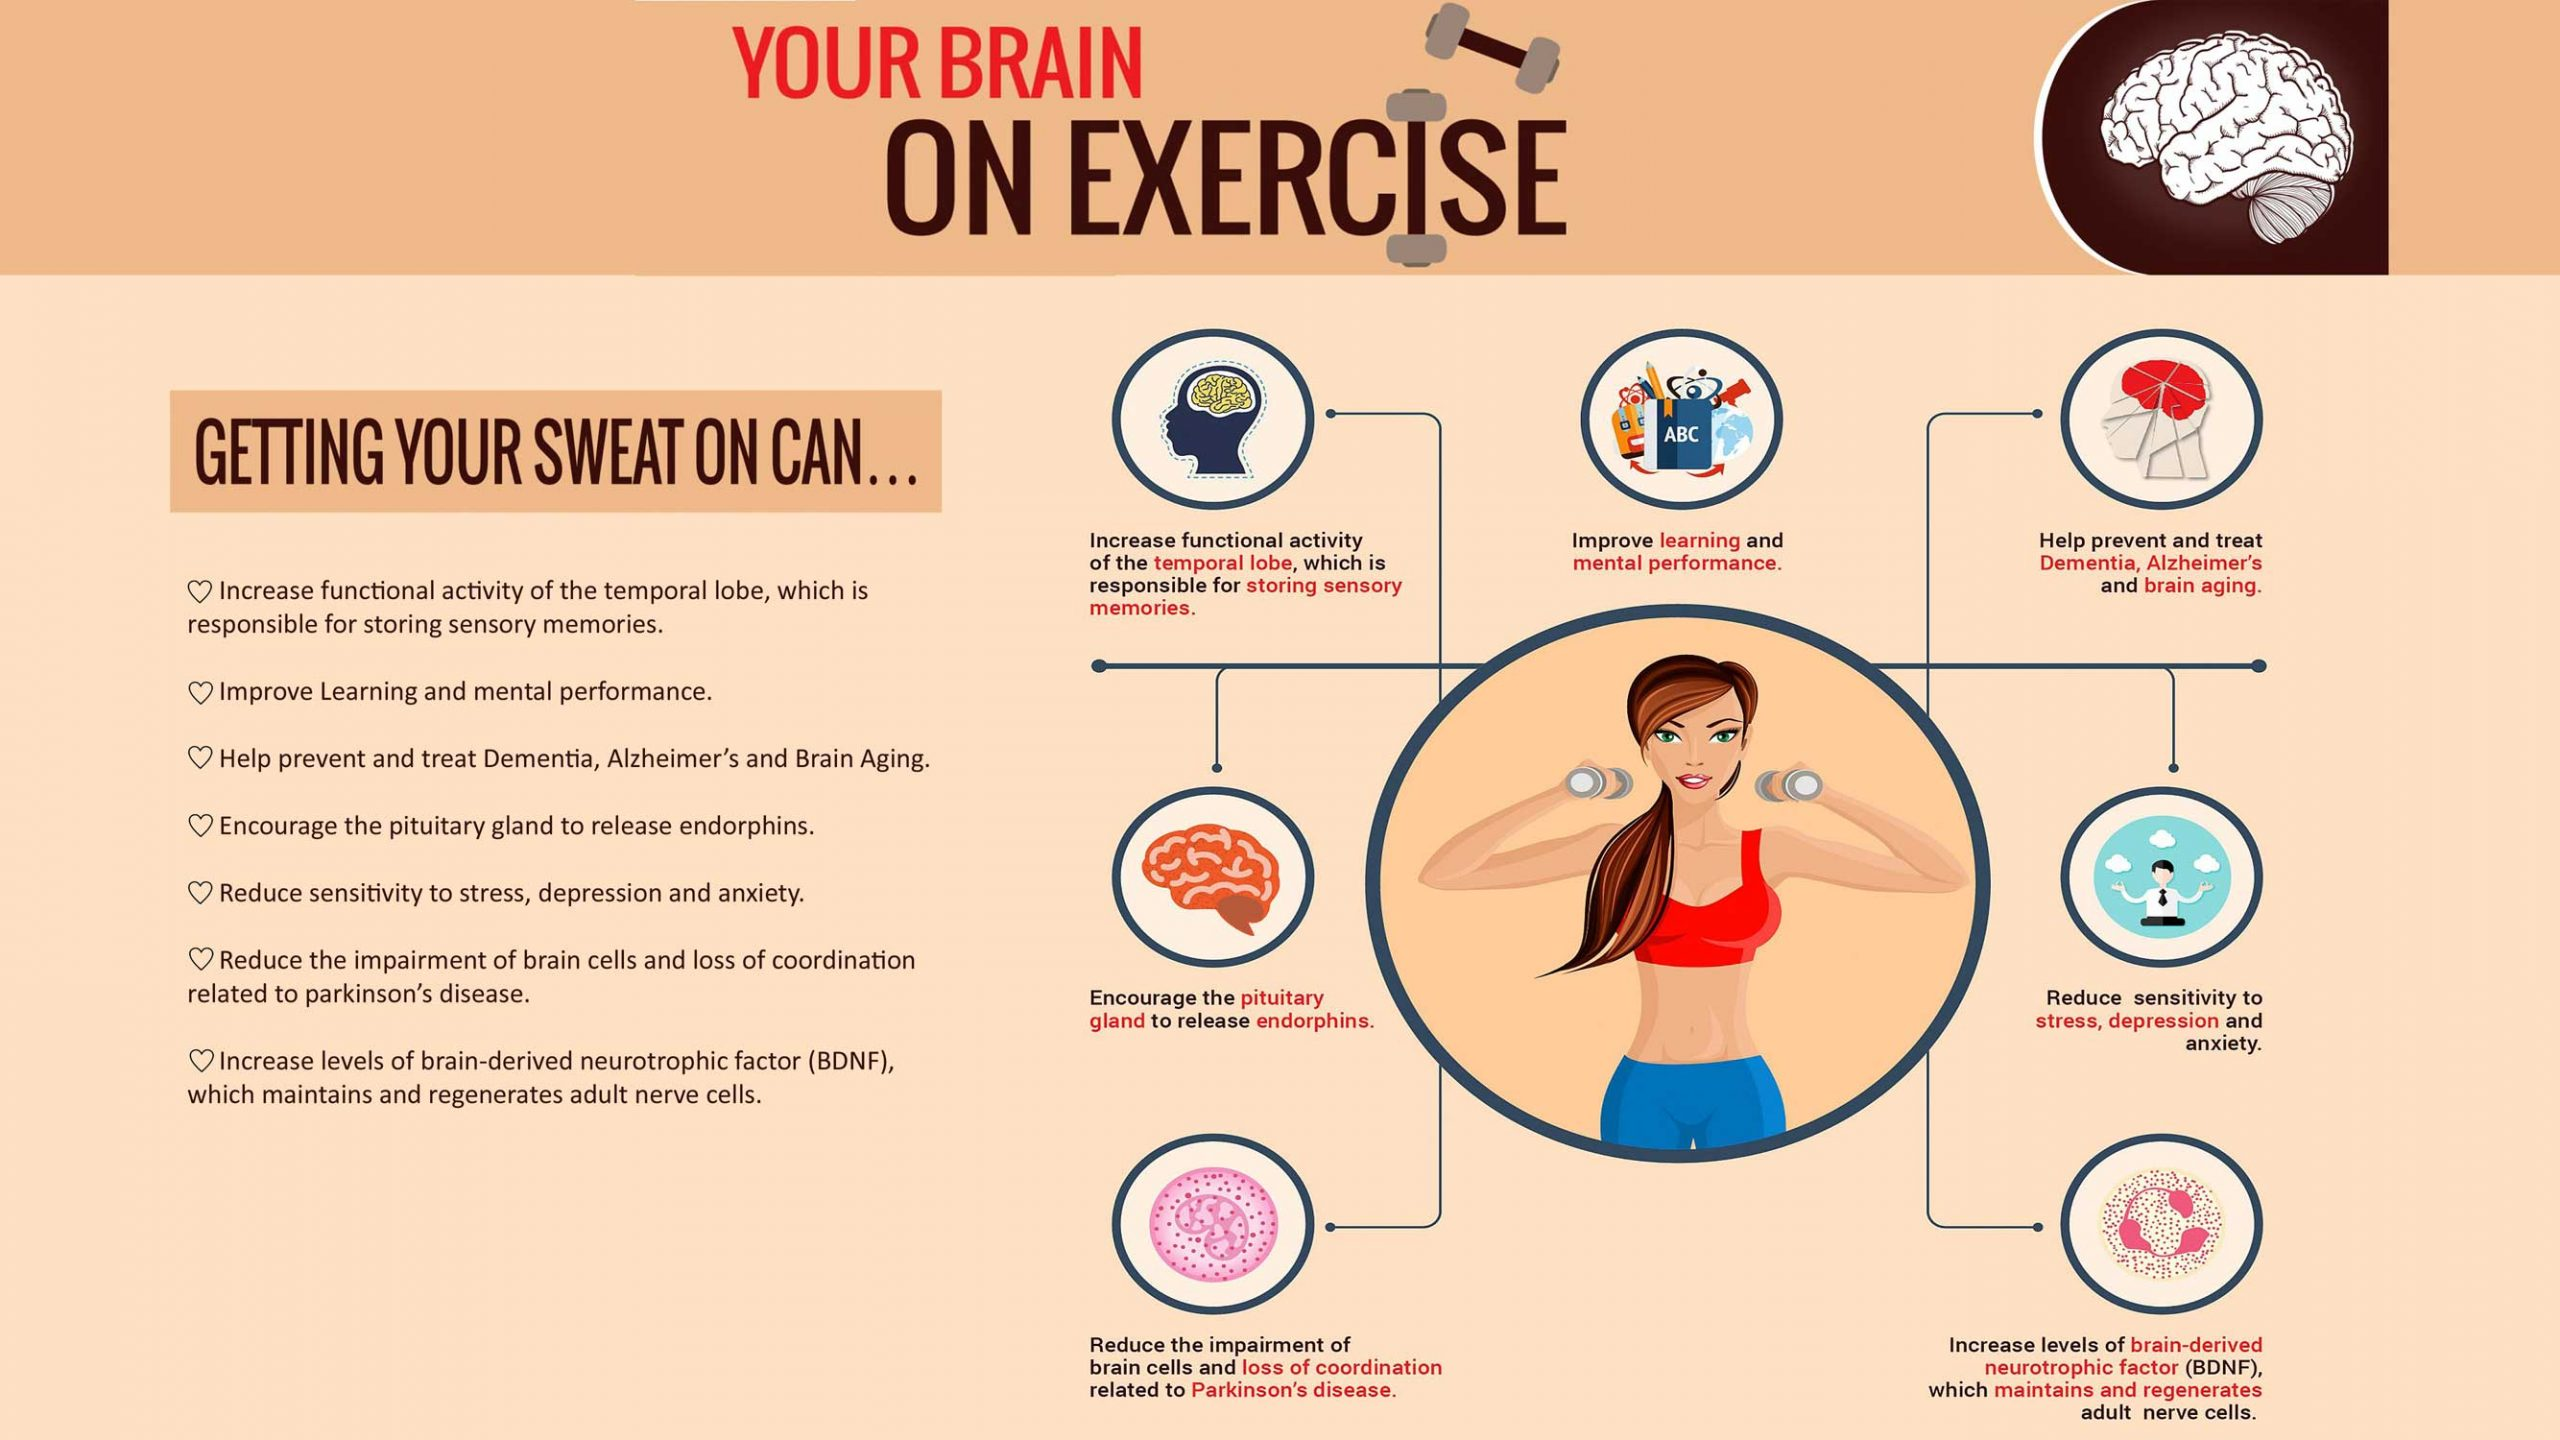 YourBrainOnExercise